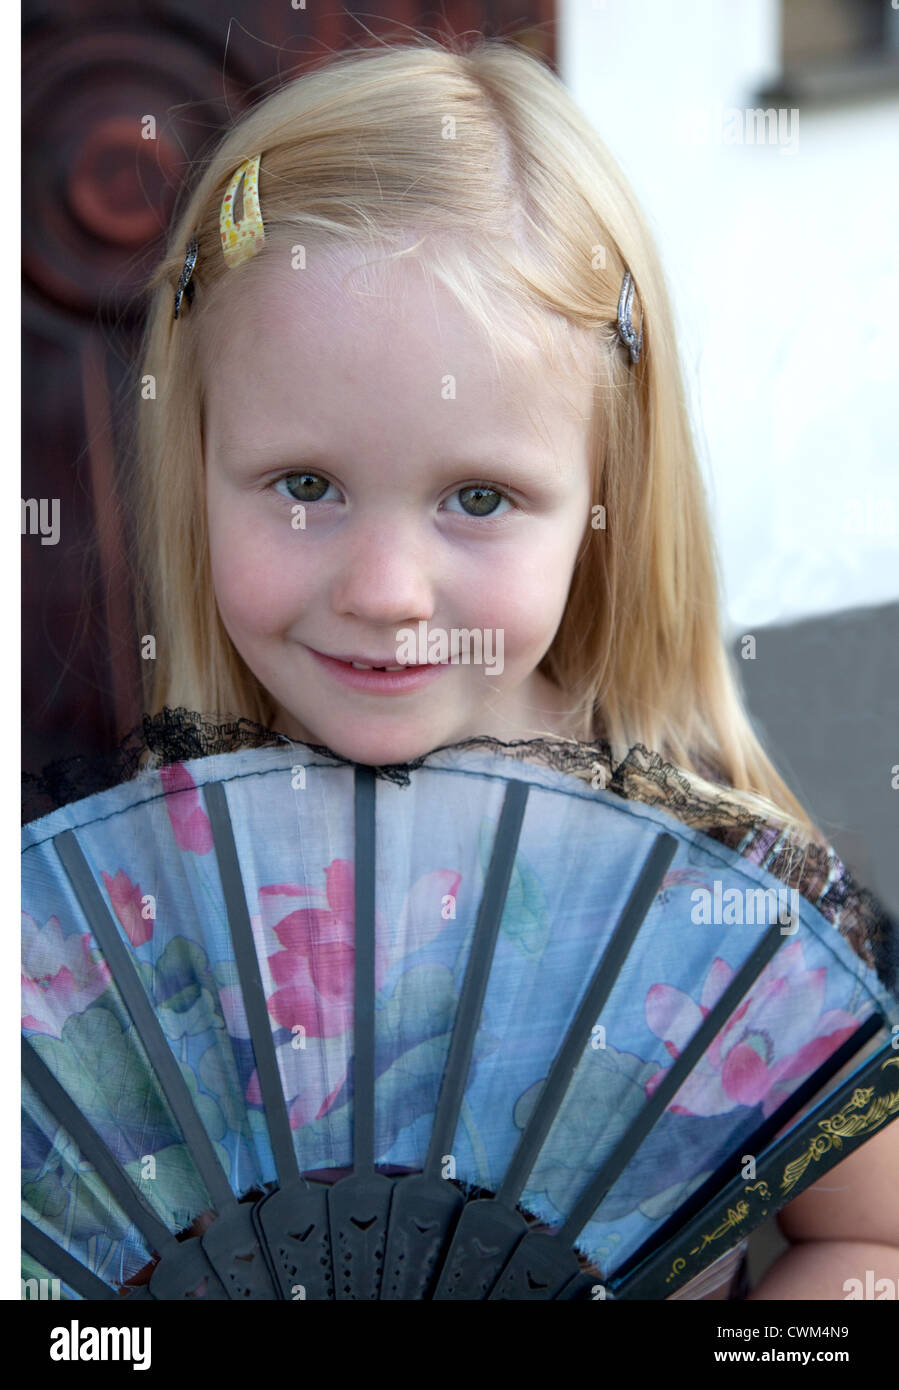 Polish girl age 4 looking over the top of a traditional hand-held folding fan. Zawady Central Poland - Stock Image